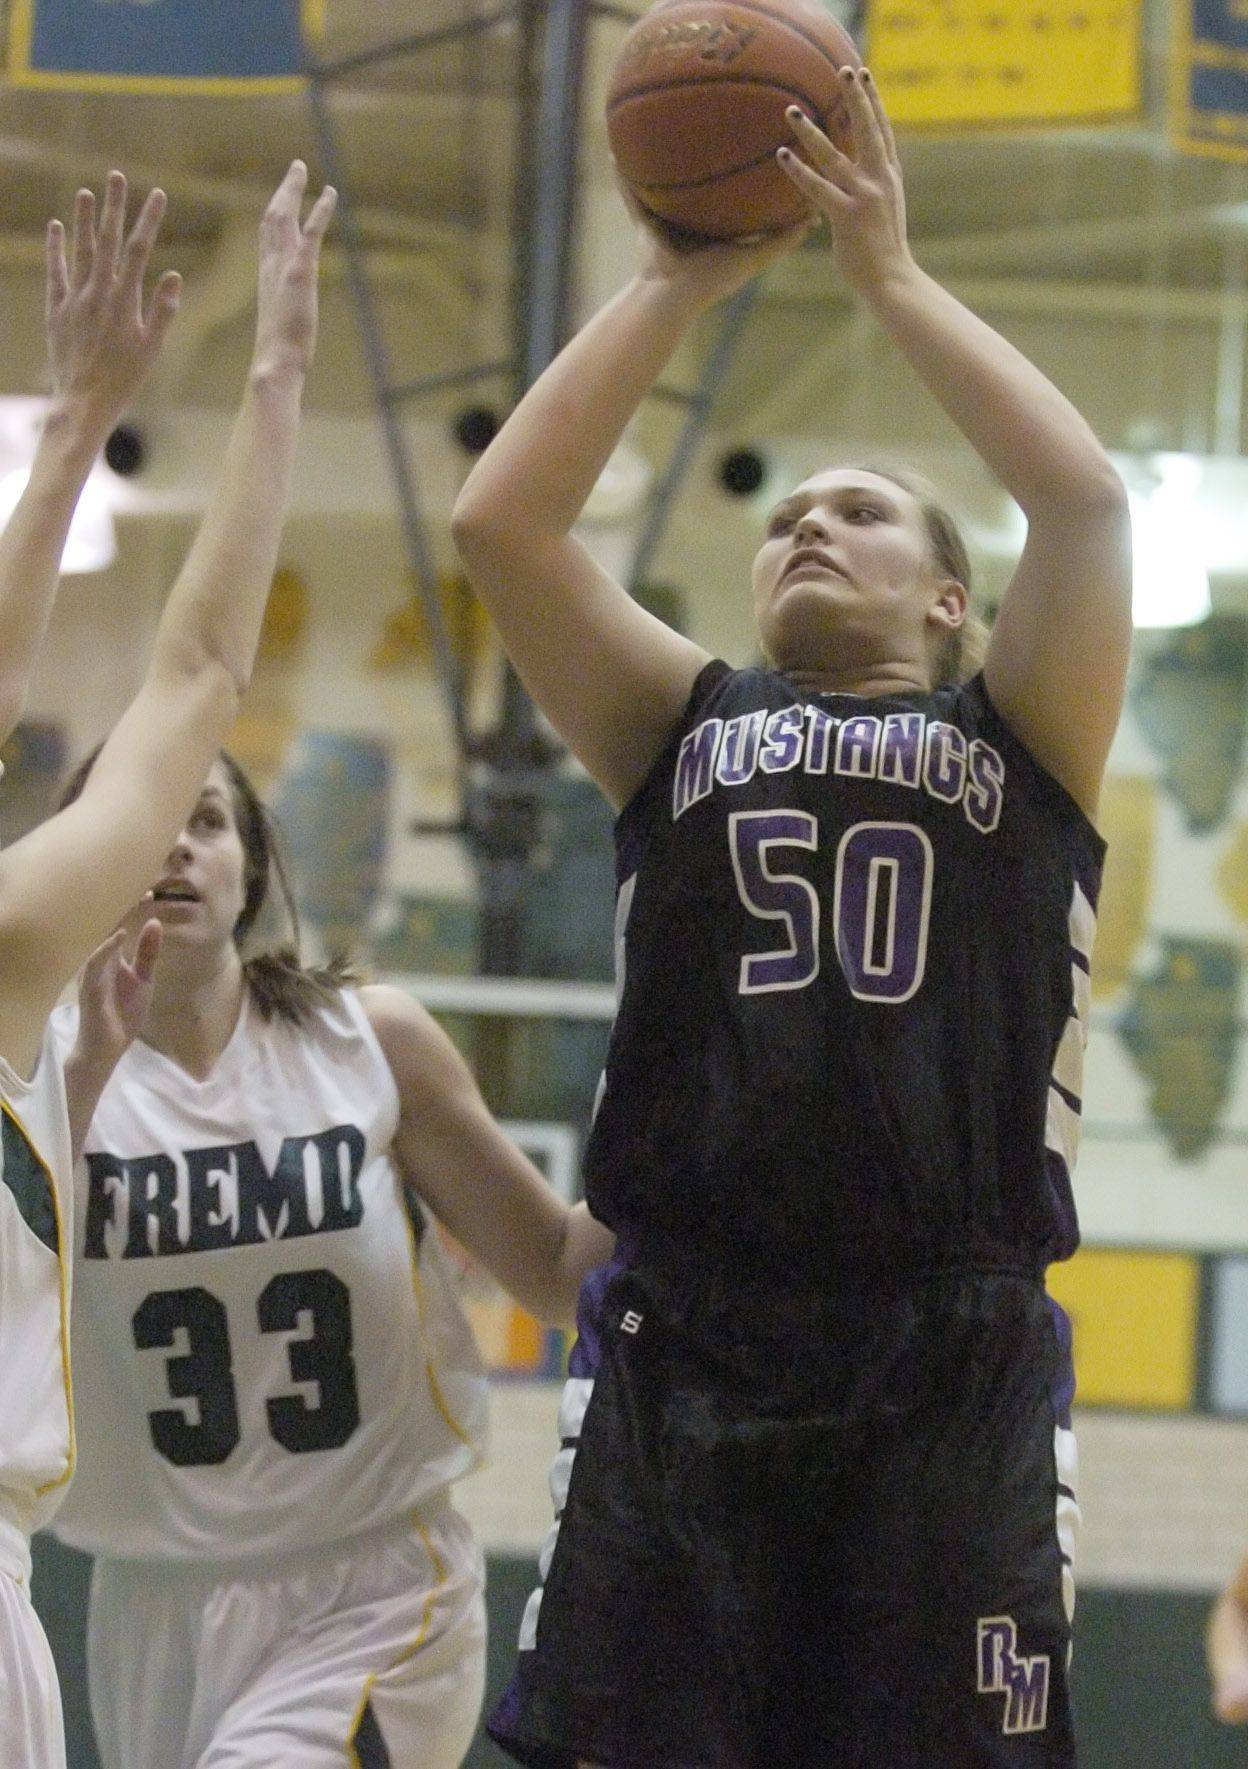 Images from the Rolling Meadows vs. Fremd girls basketball game in Palatine on Tuesday, November 30th.